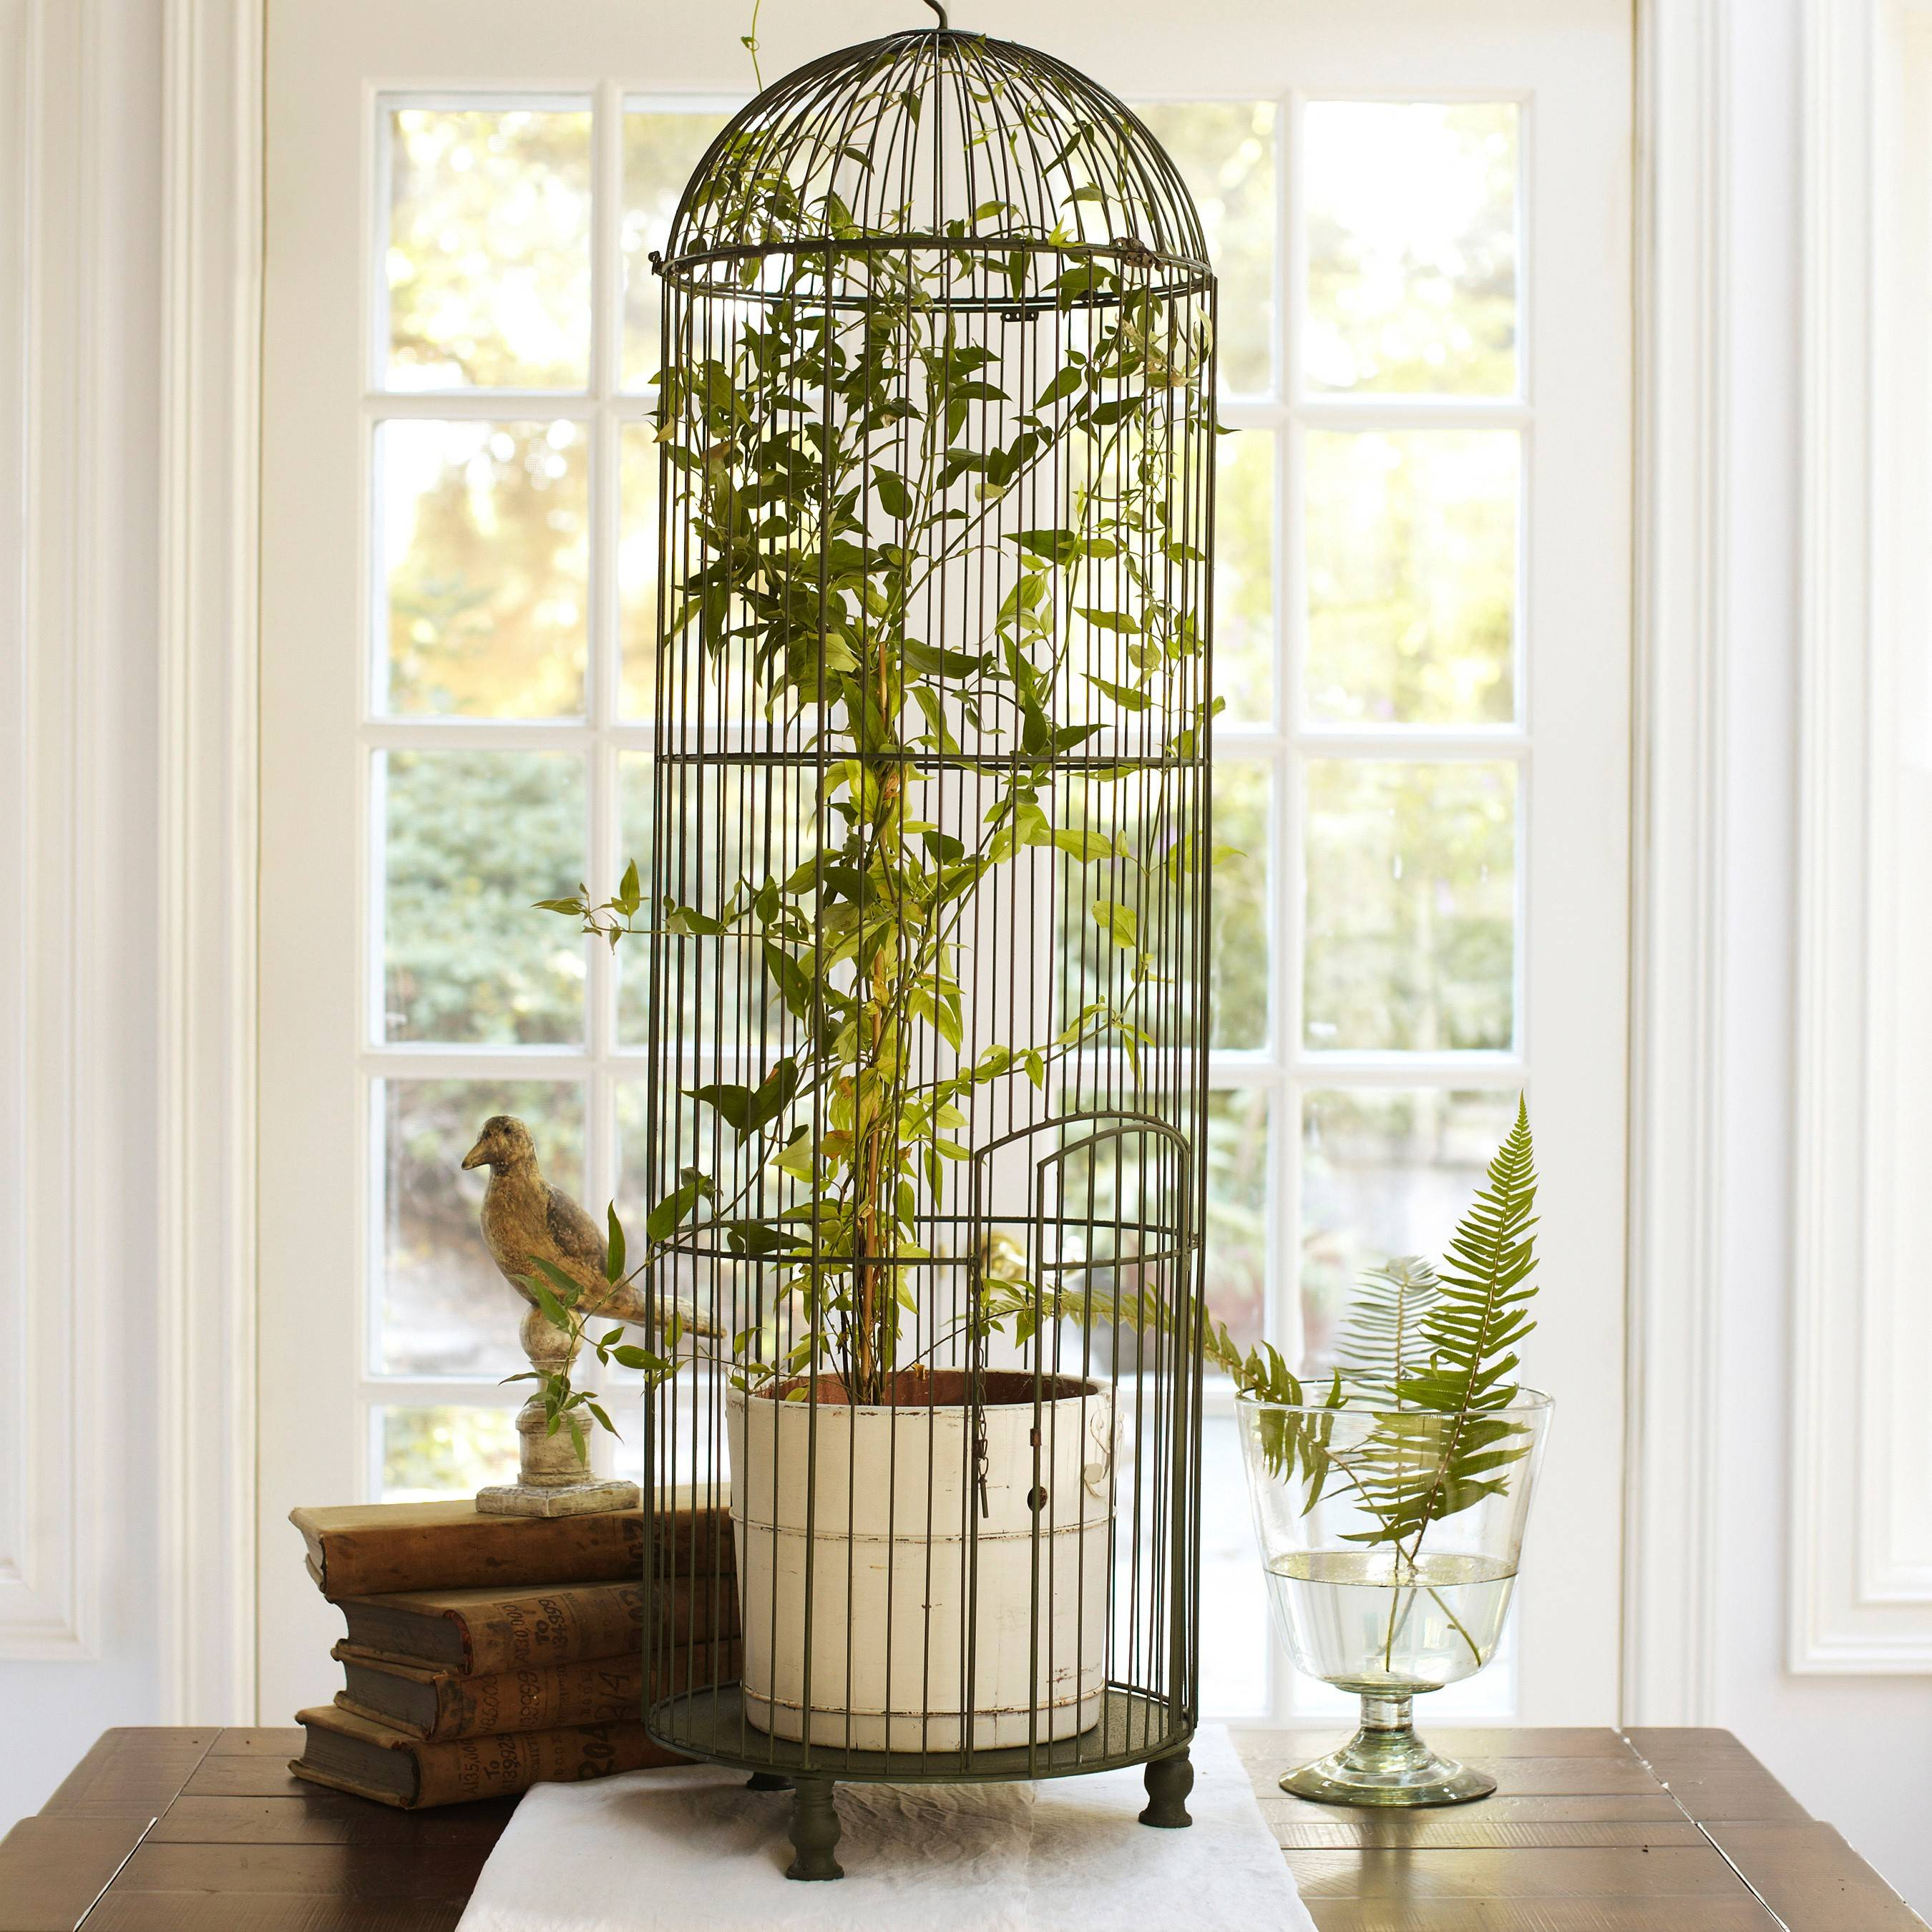 Pottery Barn's tall wire birdcage in a distressed green painted wire can be filled with a tall plant or just used as a decorative tabletop accessory.  Victorians were fond of birds in all iterations, from illustrations to textile motifs to aviaries large and small.